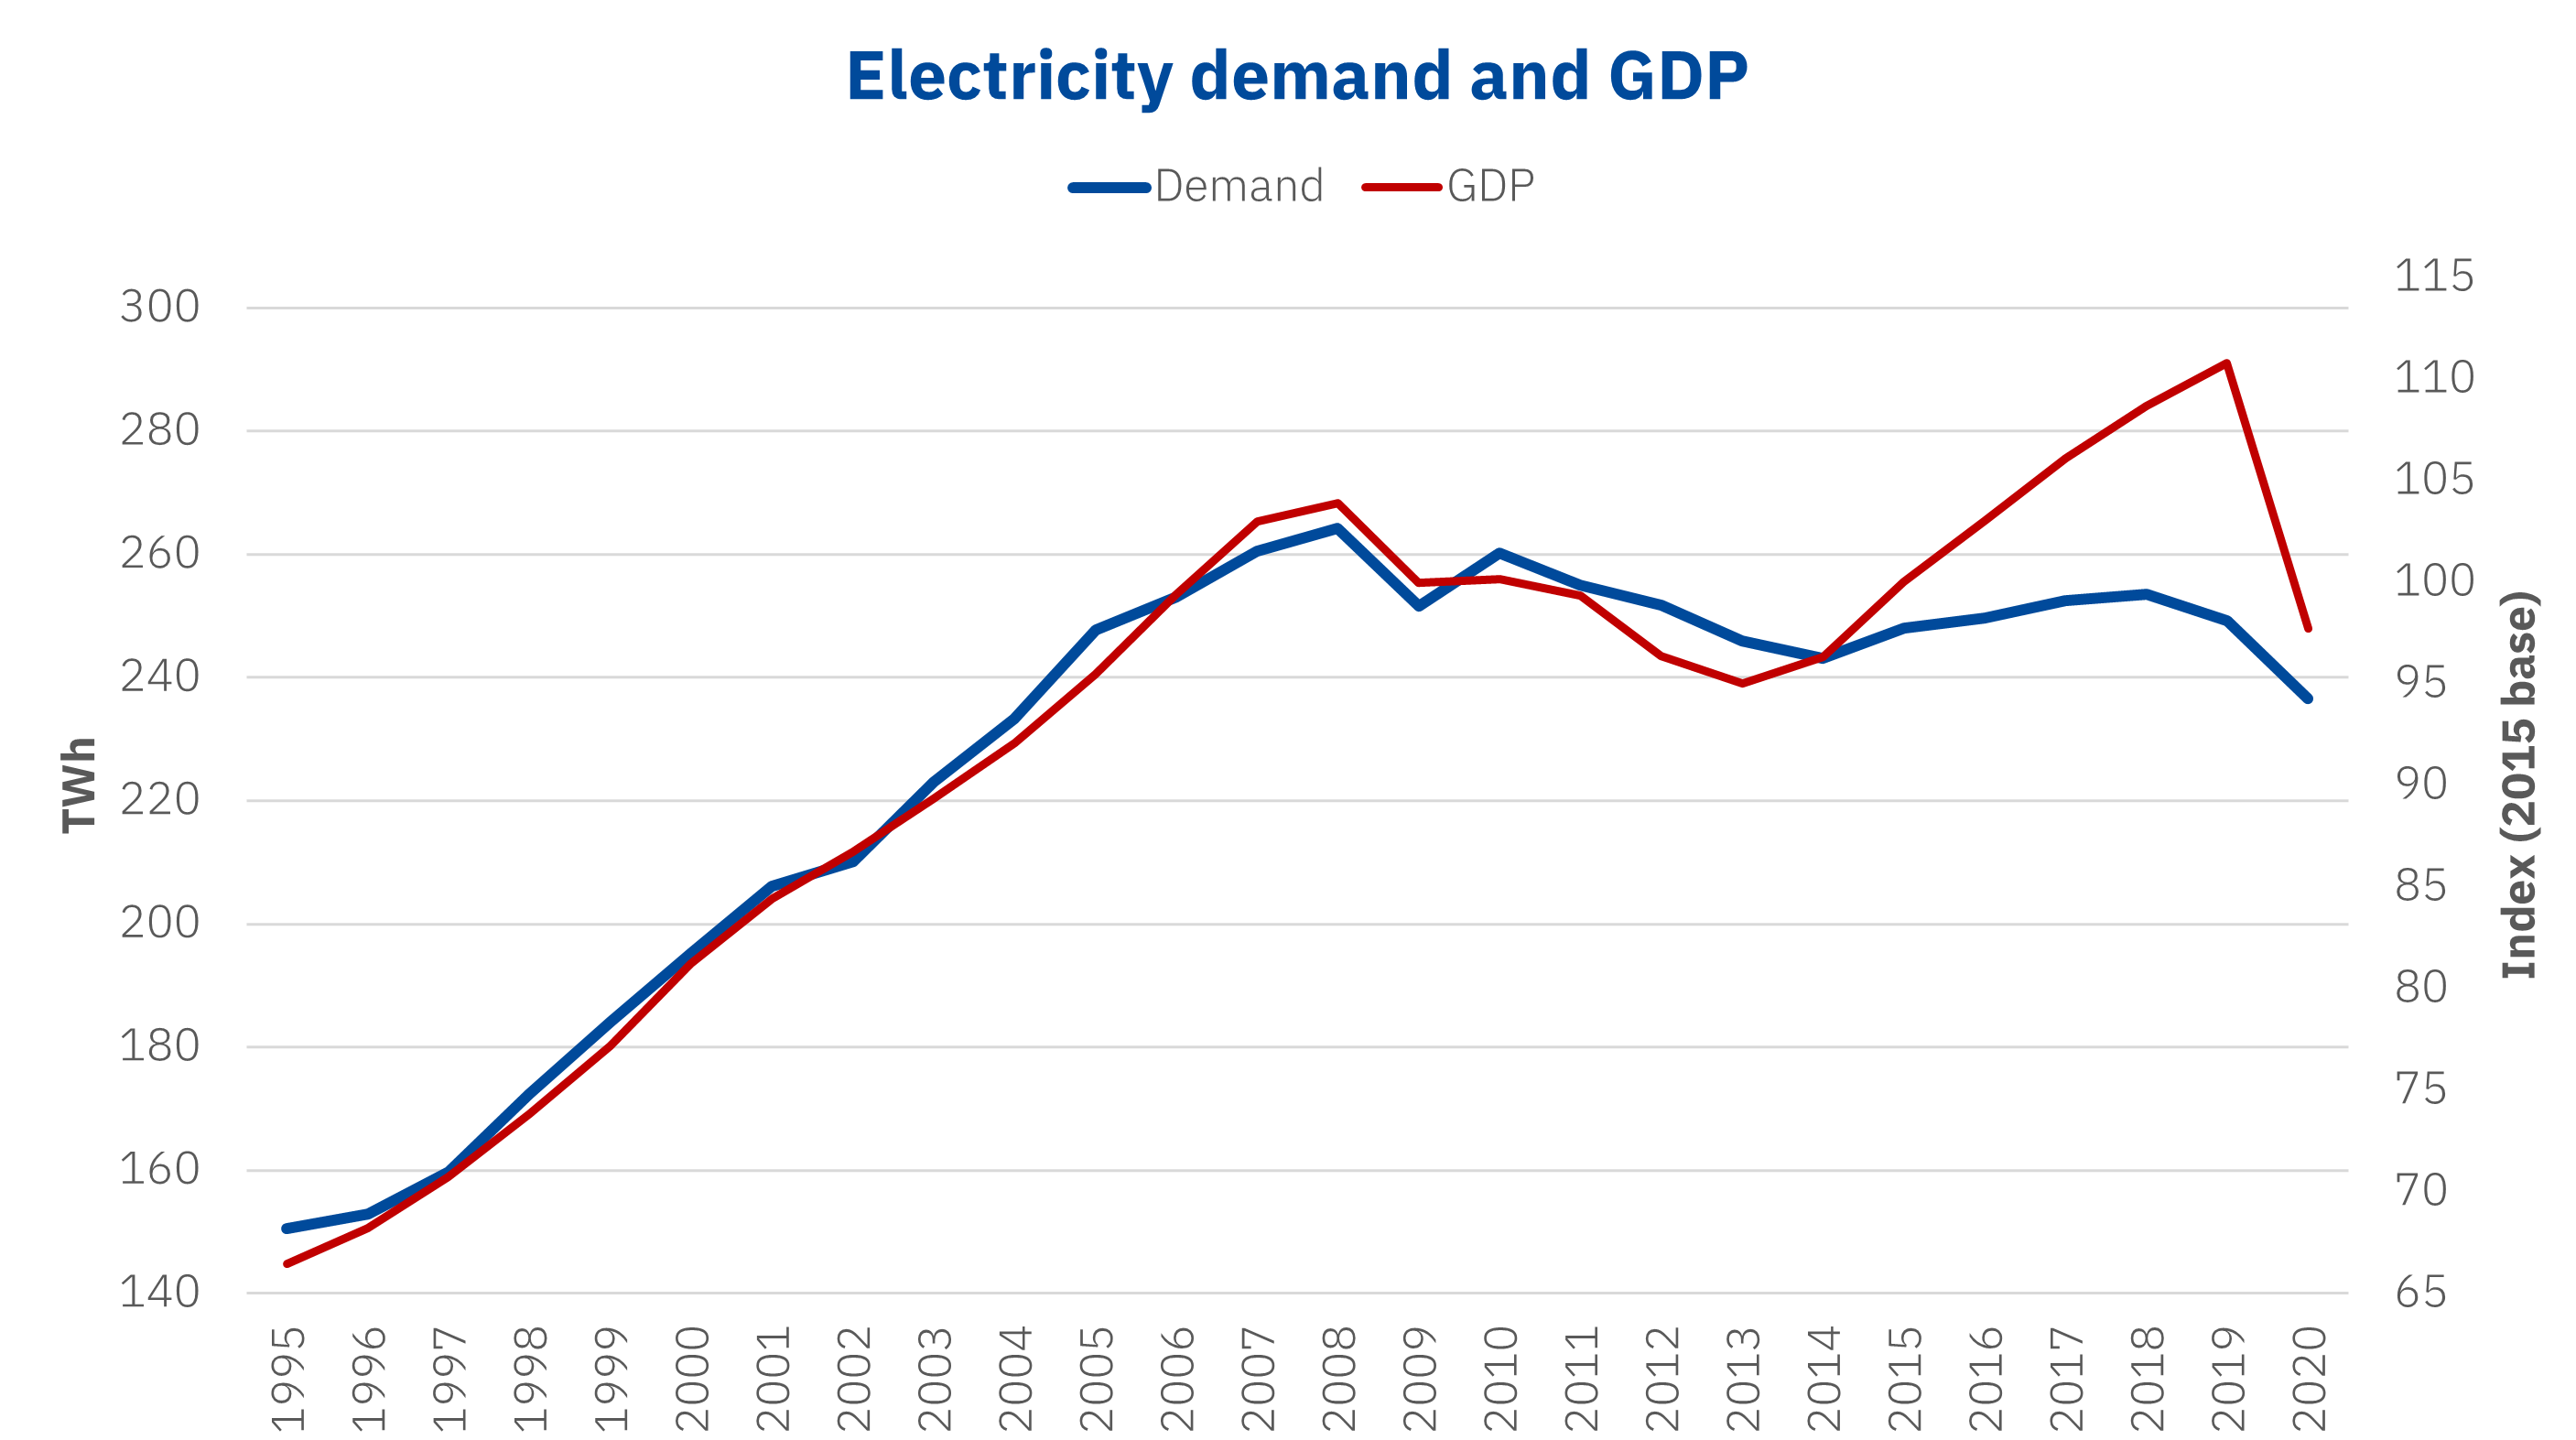 AleaSoft - Electricity demand GDP Spain